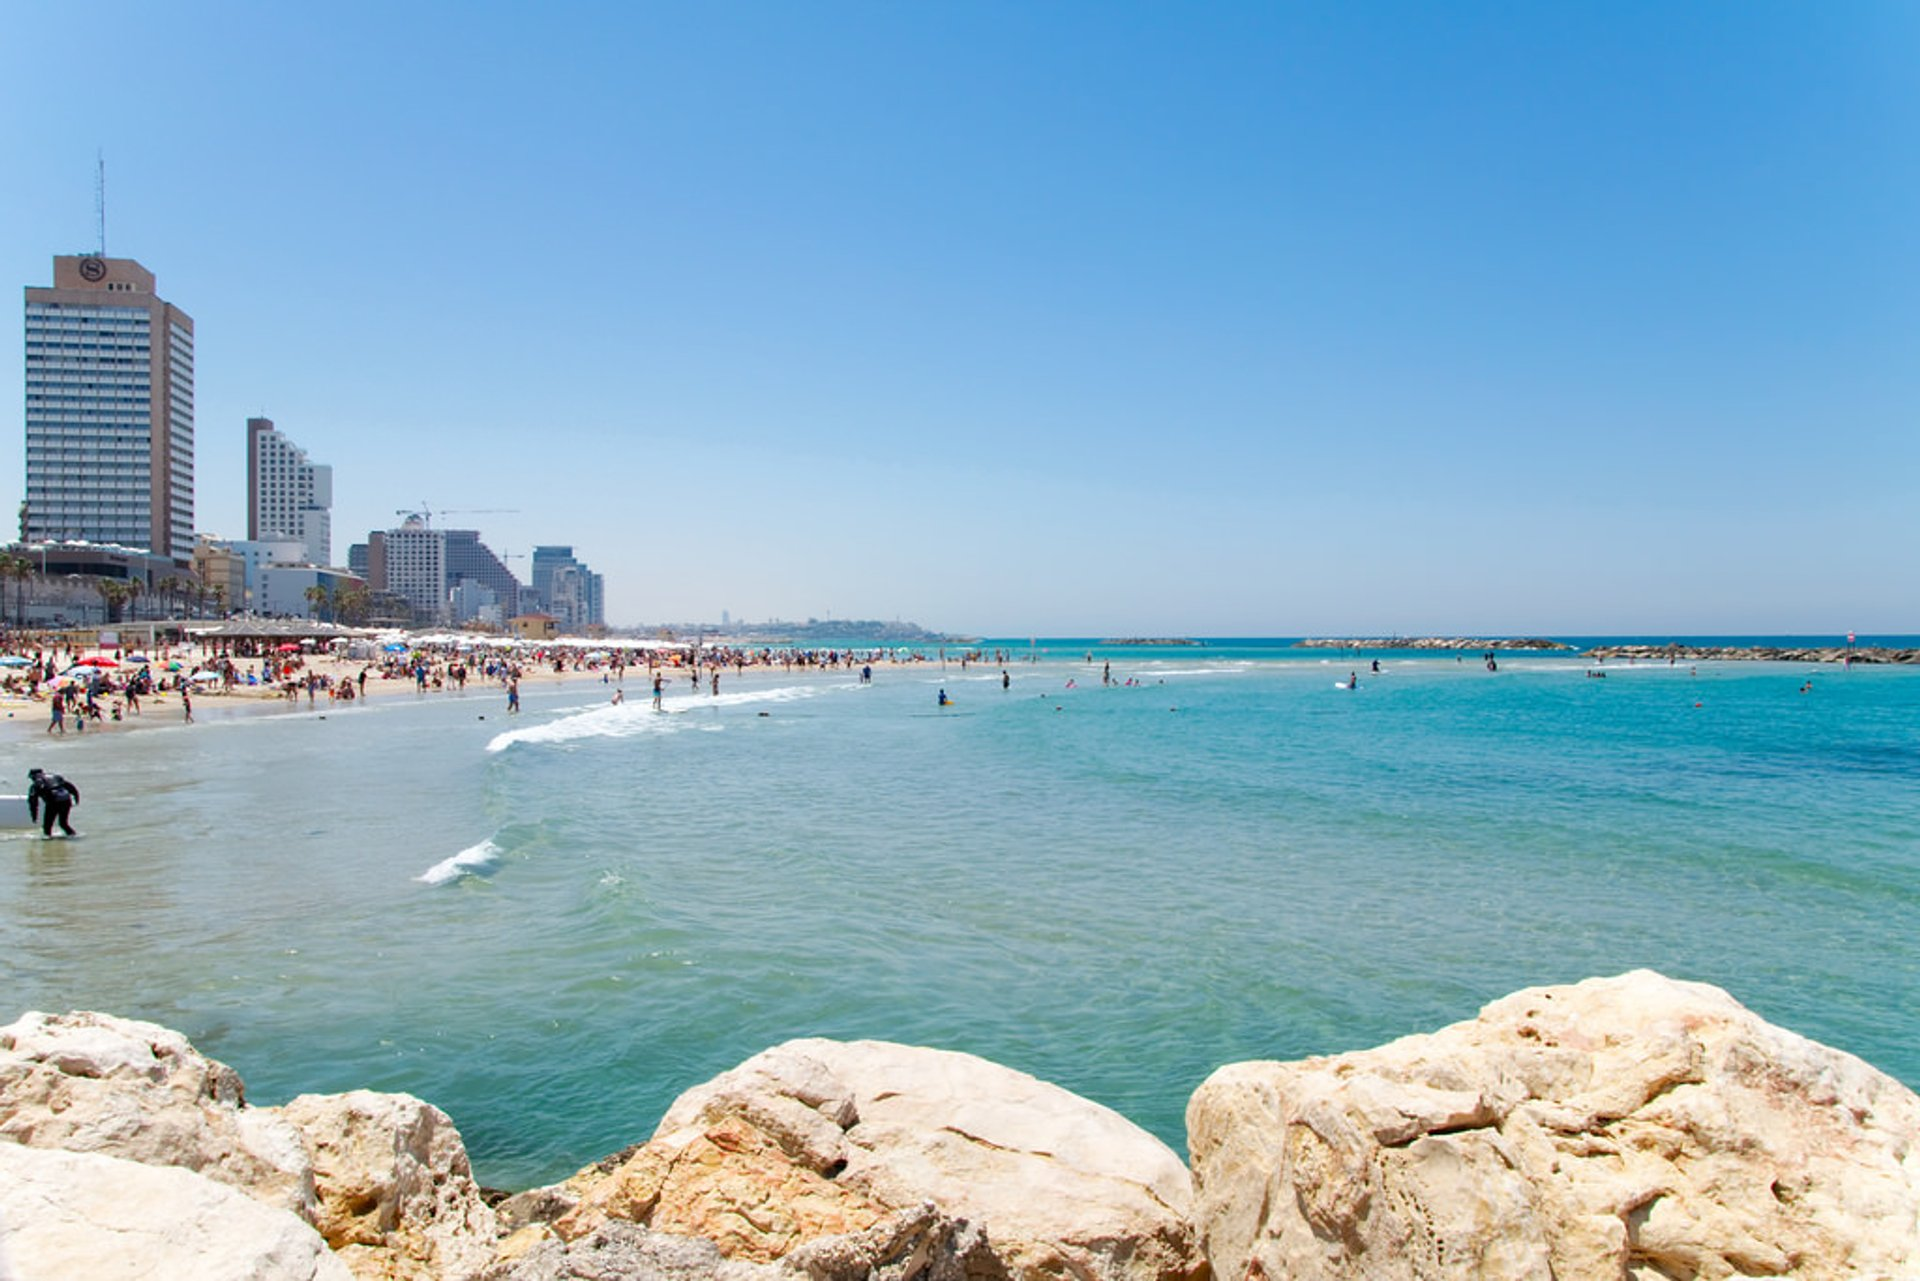 Beach Season in Israel 2020 - Best Time